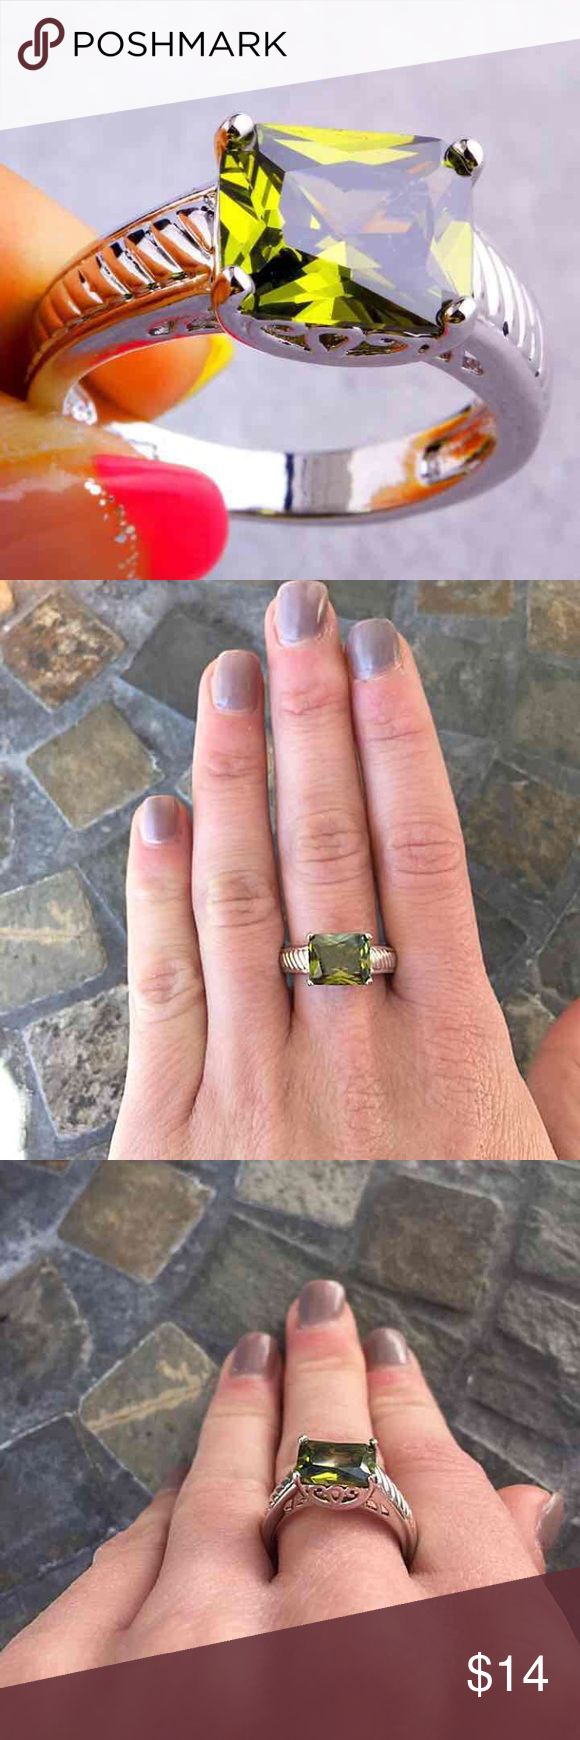 Green Peridot Gemstone Silver Engagement Ring Super cute ring! It's a square/rectangle cut green Peridot center stone  Pretty designed silver plated band FIRM PRICE/NO TRADES❗ Jewelry Rings